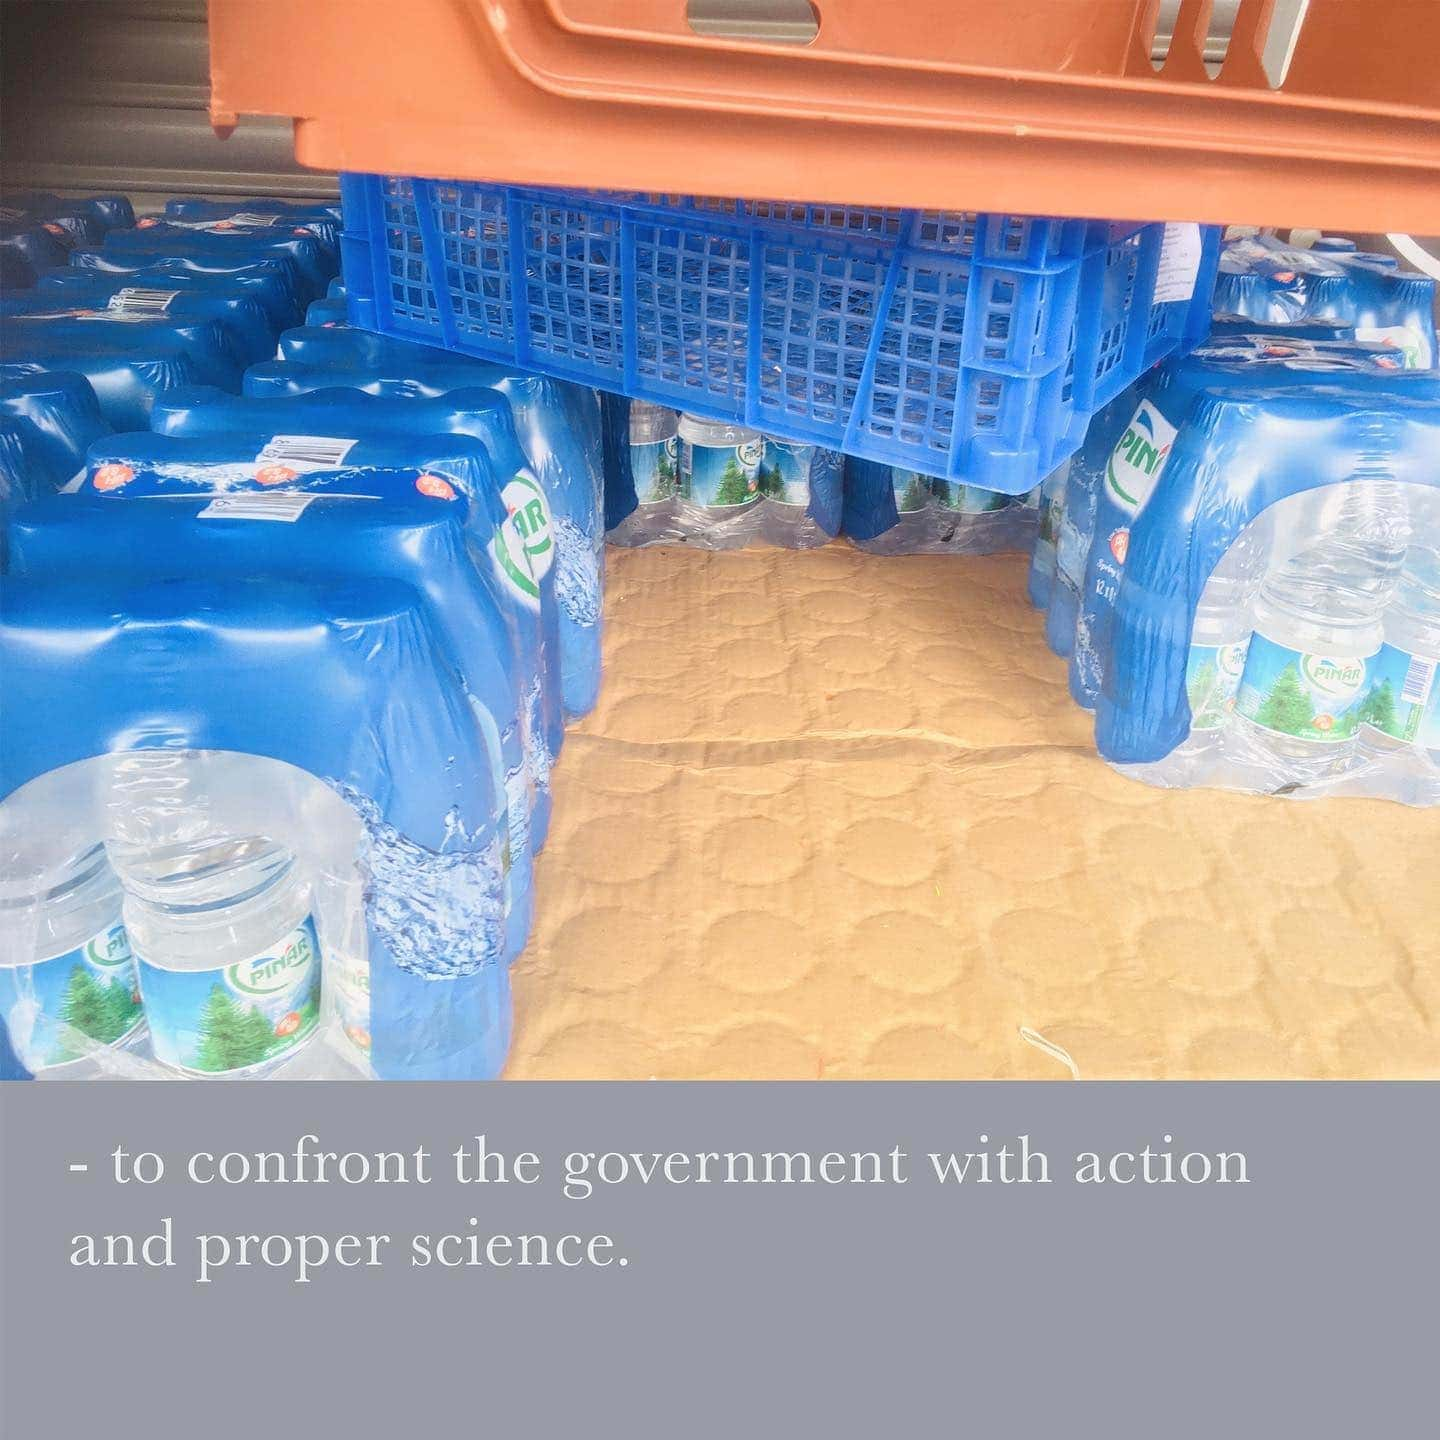 - to confront the government with action and proper science. . . . #contemporaryart #plasticcrates #artwork #art #text #textart #artistsoninstagram #waste #plastic #rubbish #detritus #action #advice #science #scientificadvice #government #confrontation Pierre d'Alancaisez, Dennis Goodwin